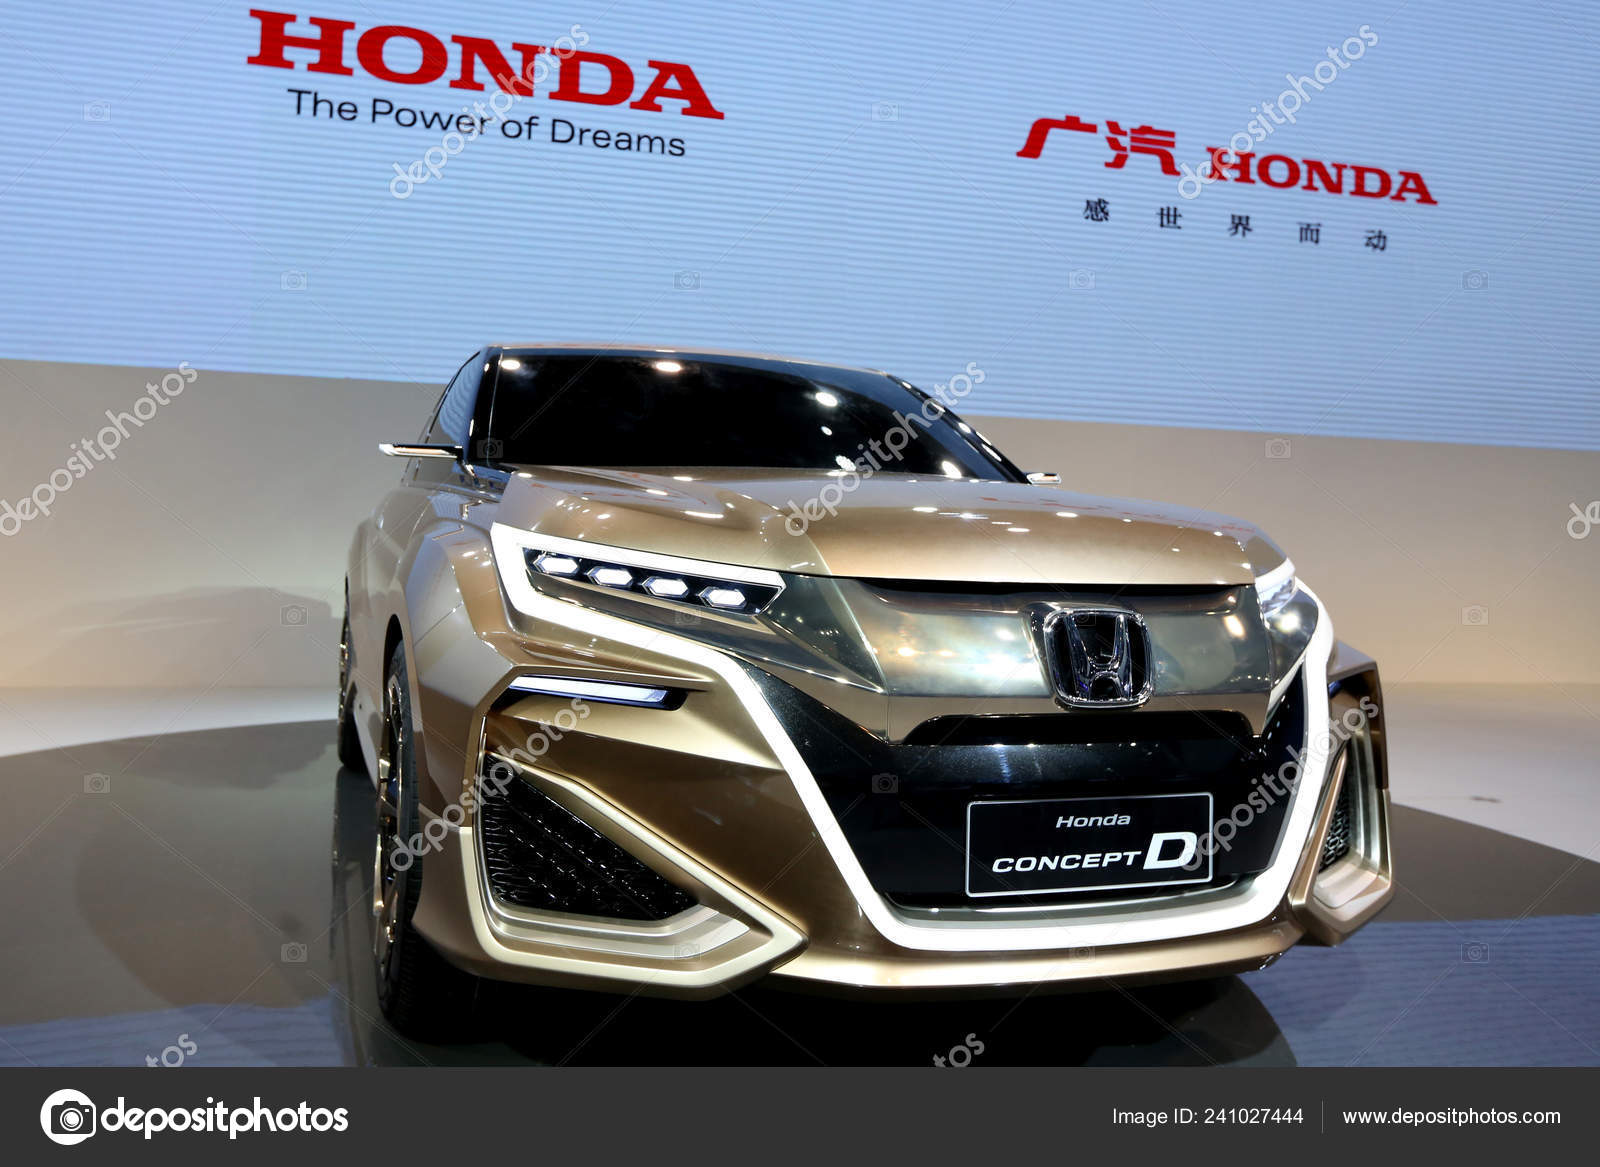 D Exhibition Stand Free Download : Honda crossover concept display stand gac honda joint venture gac